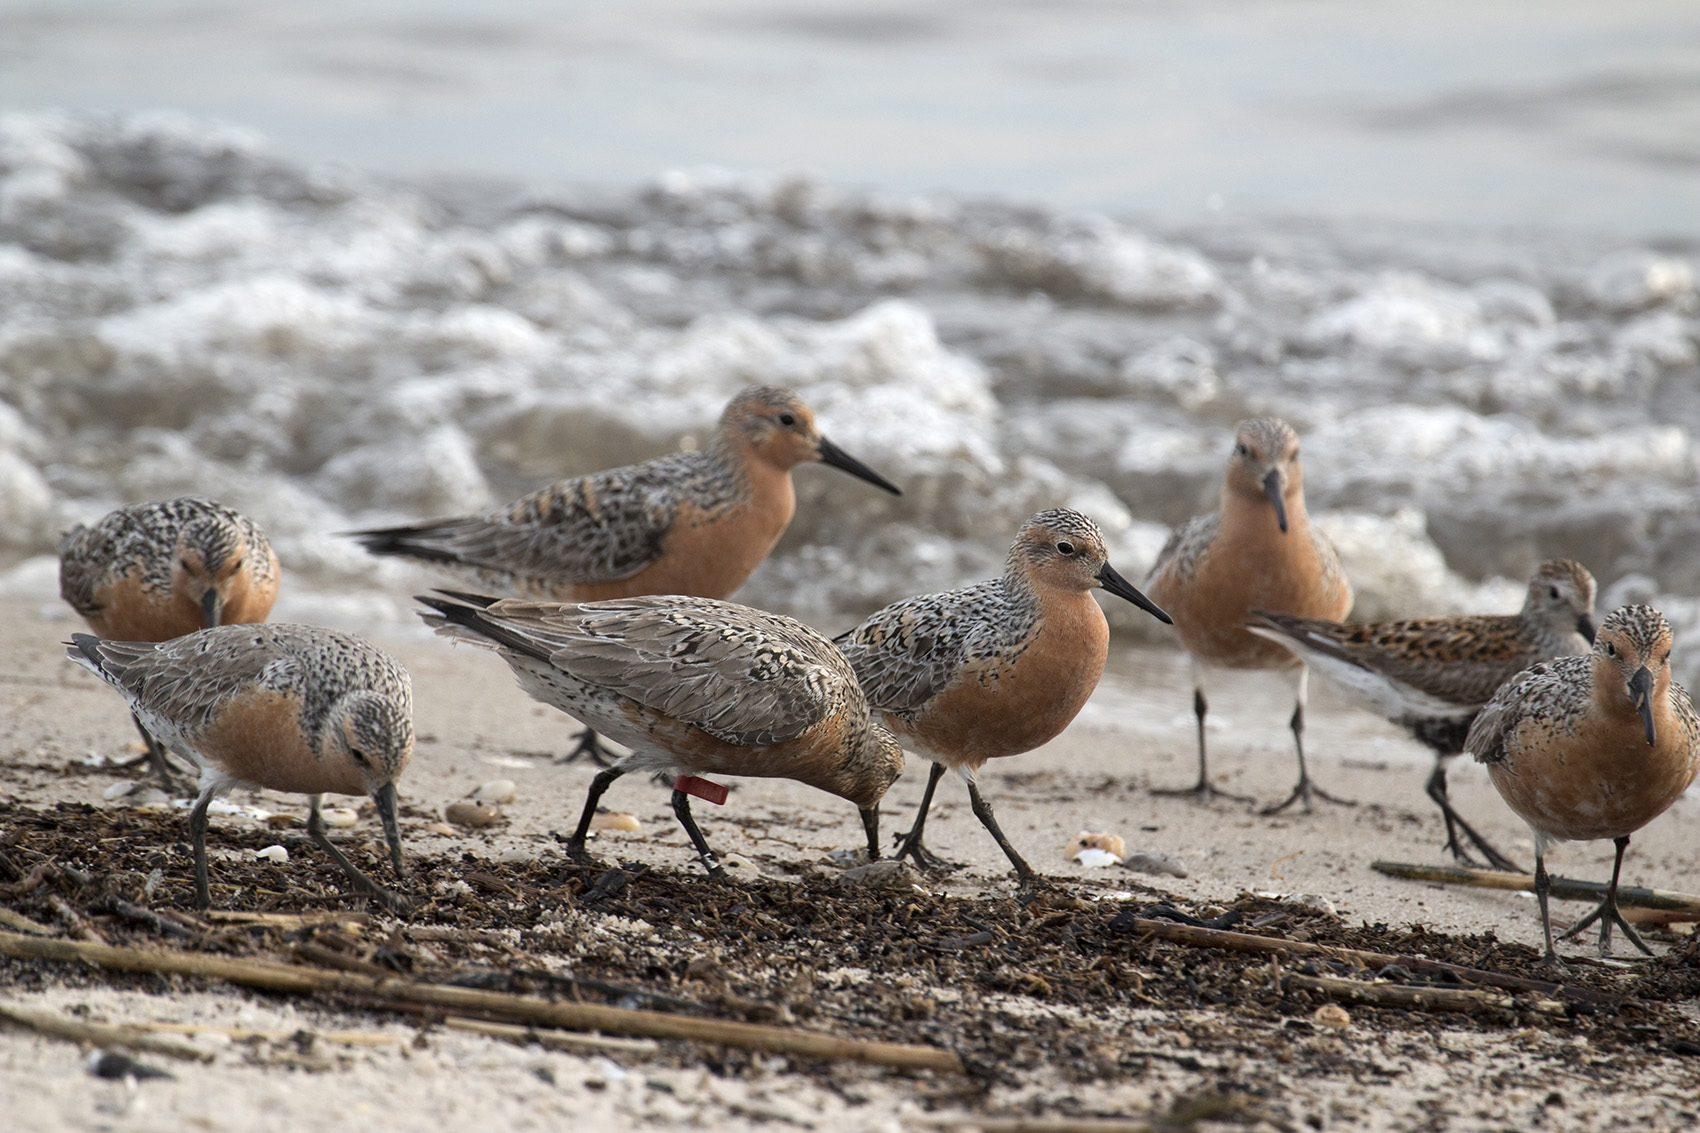 Hundreds of migrating, endangered red knots feed hungrily on horseshoe crab eggs along the Delaware Bay. (Getty Images)